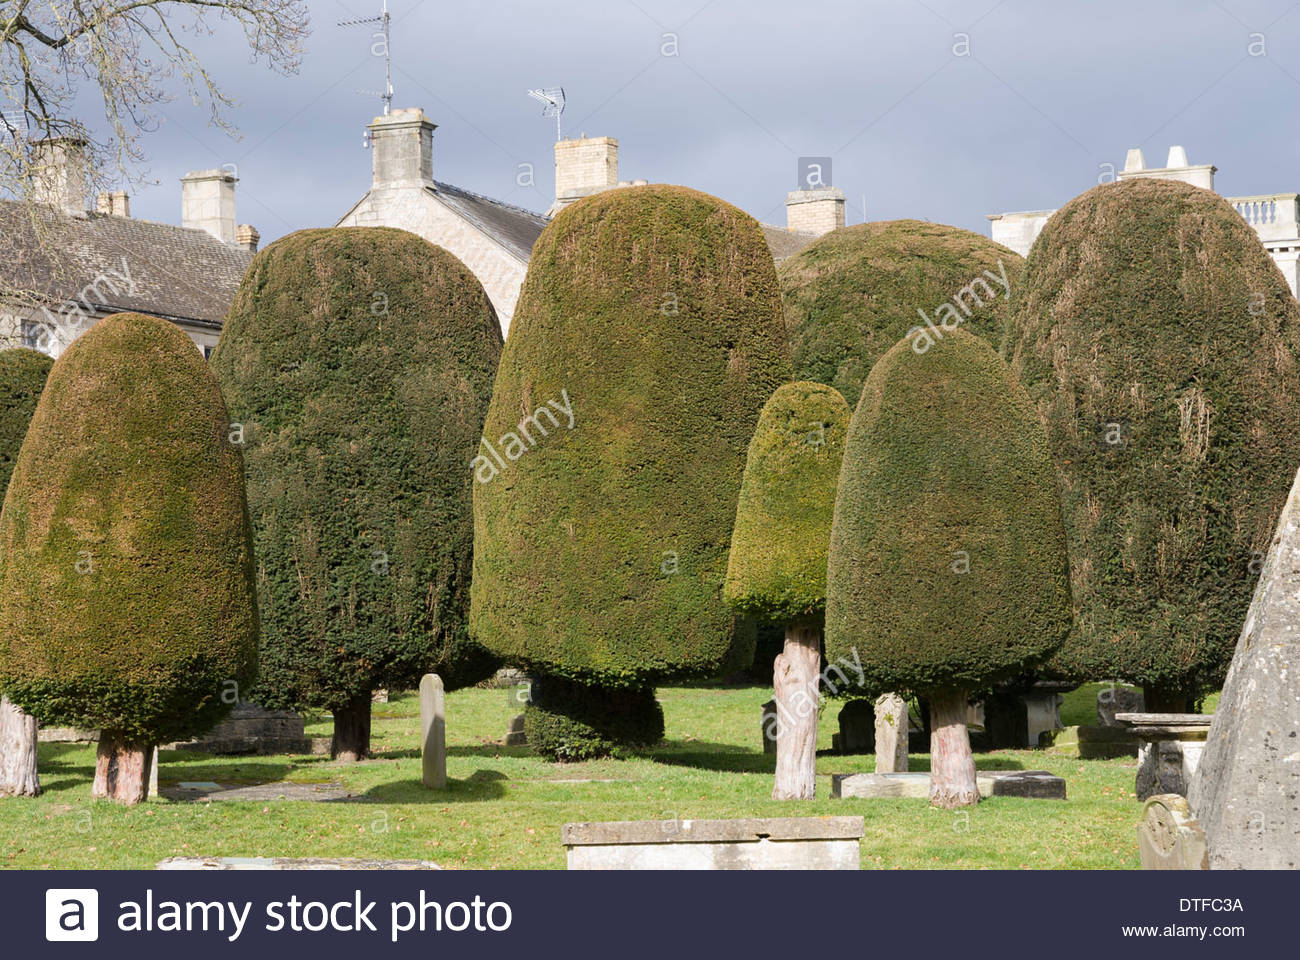 Avenue of clipped yews in the churchyard of St Mary's Church, Painswick, Gloucestershire - Stock Image